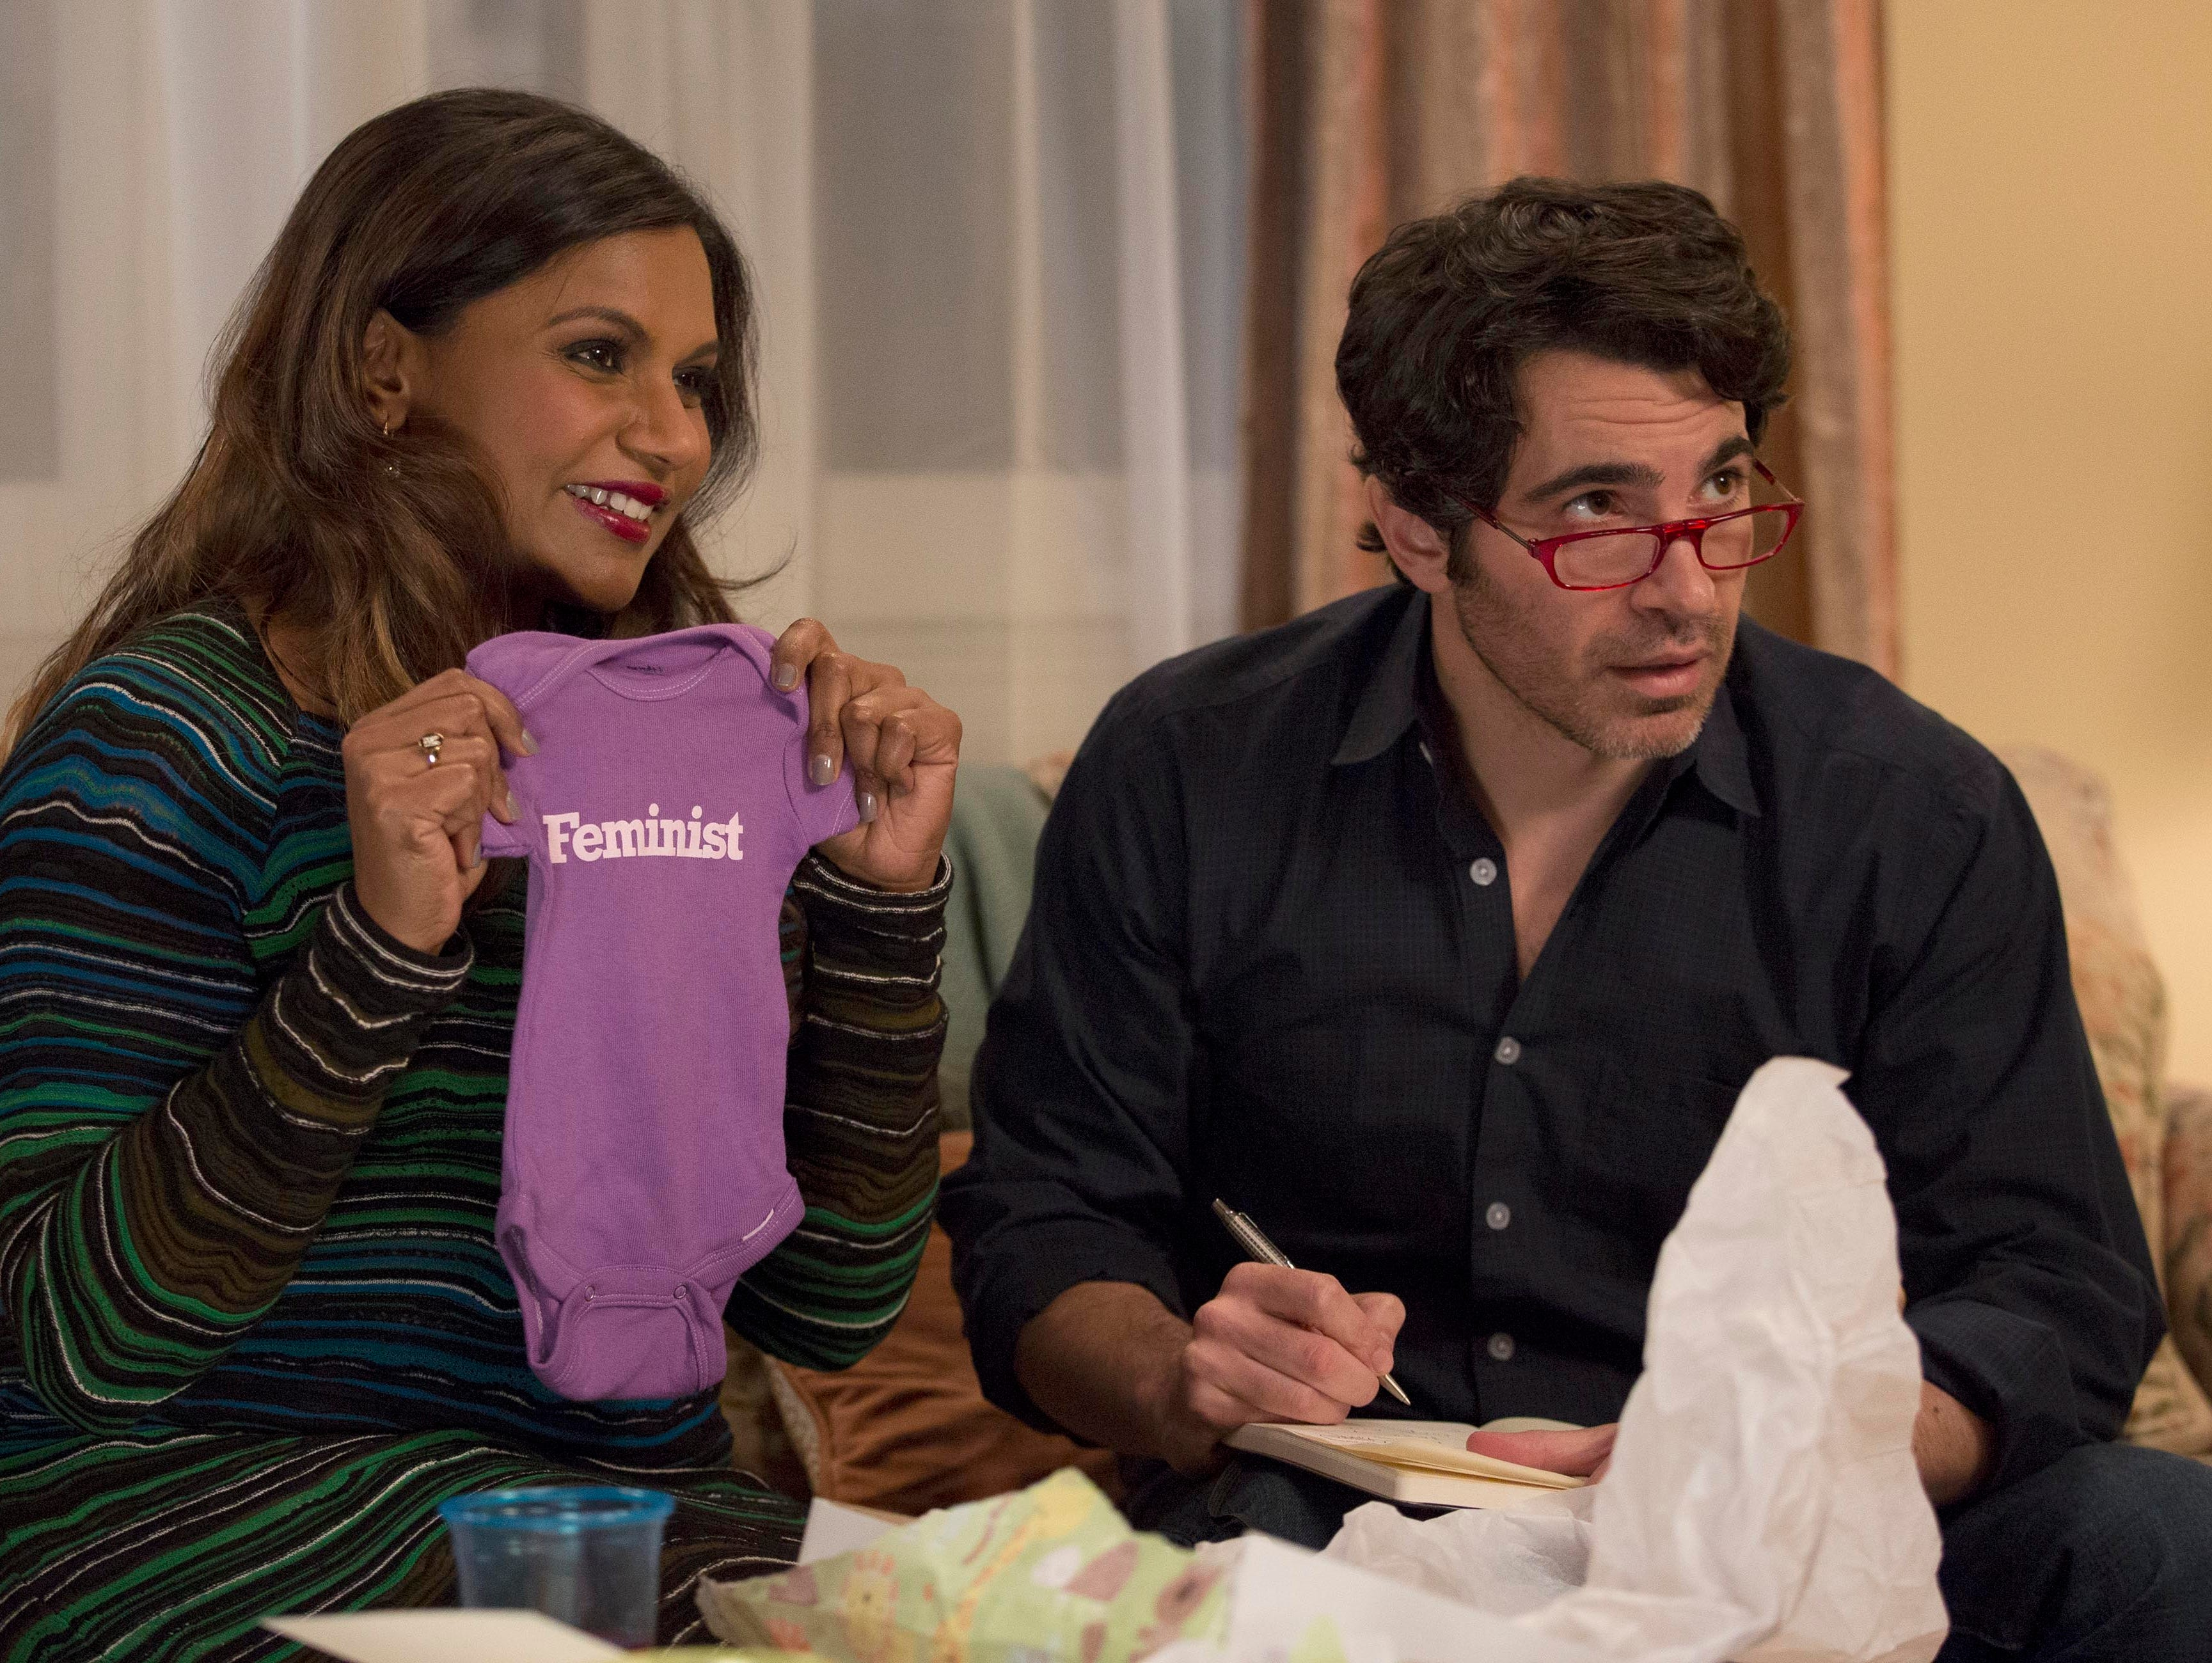 Danny (Chris Messina) helps Mindy (Mindy Kaling) open gifts at her baby shower in the season finale